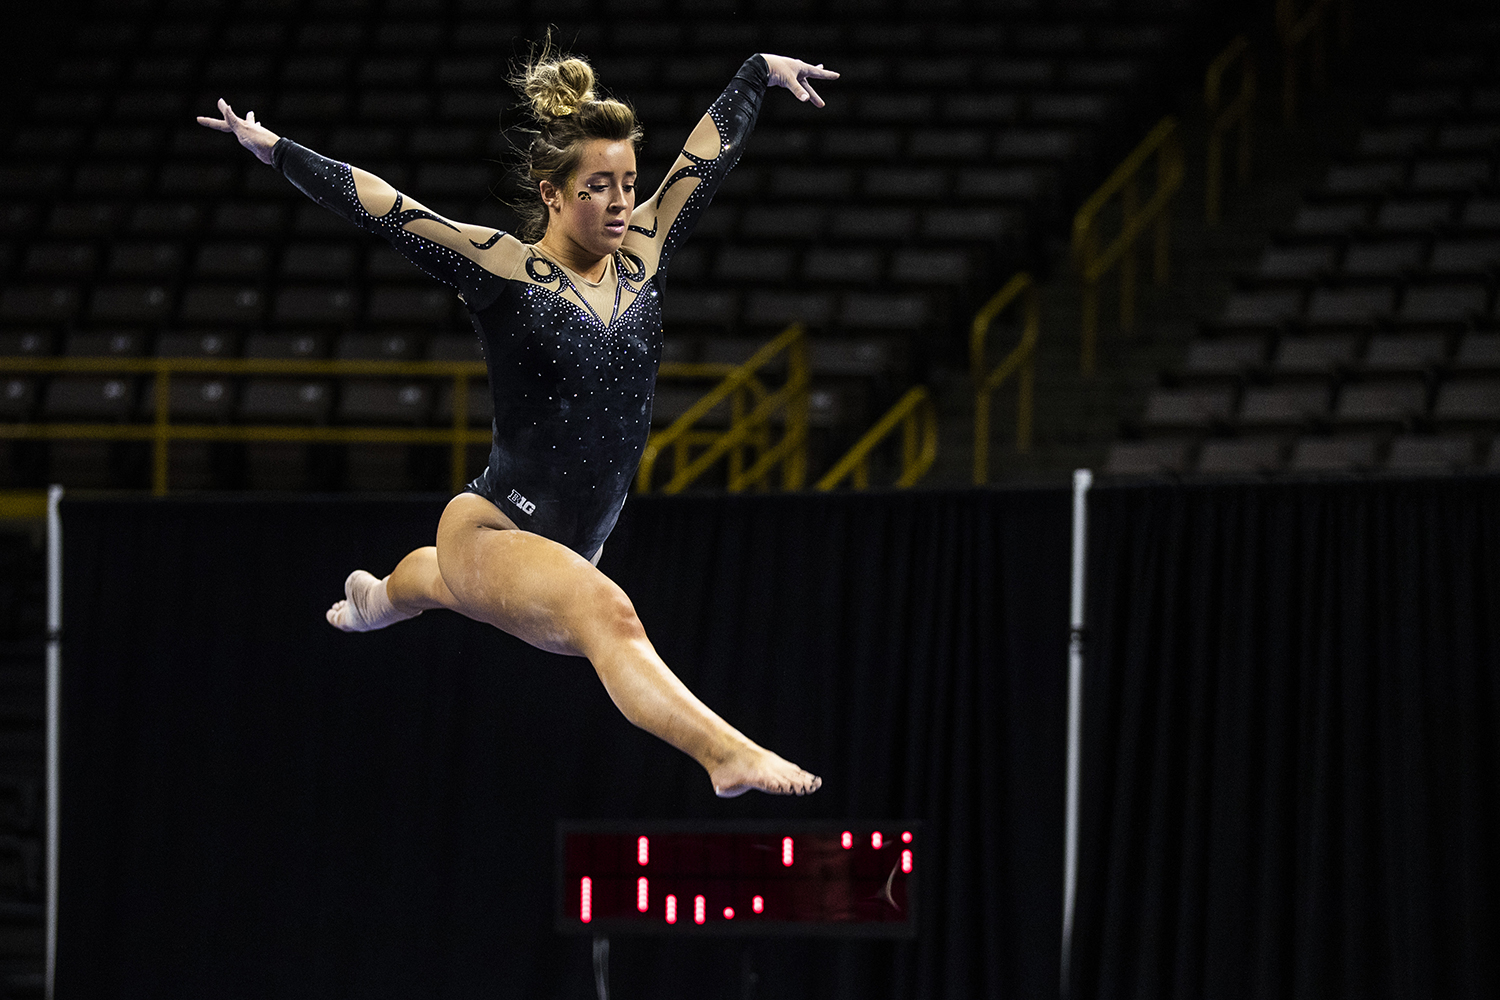 Iowa+gymnast+Maddie+Kampschroeder+performs+on+the+beam+during+the+women%27s+gymnastics+meet+vs.+SEMO+at+Carver-Hawkeye+Arena+on+Friday%2C+January+11%2C+2019.+The+GymHawks+defeated+the+Redhawks+194.700-180.925.+